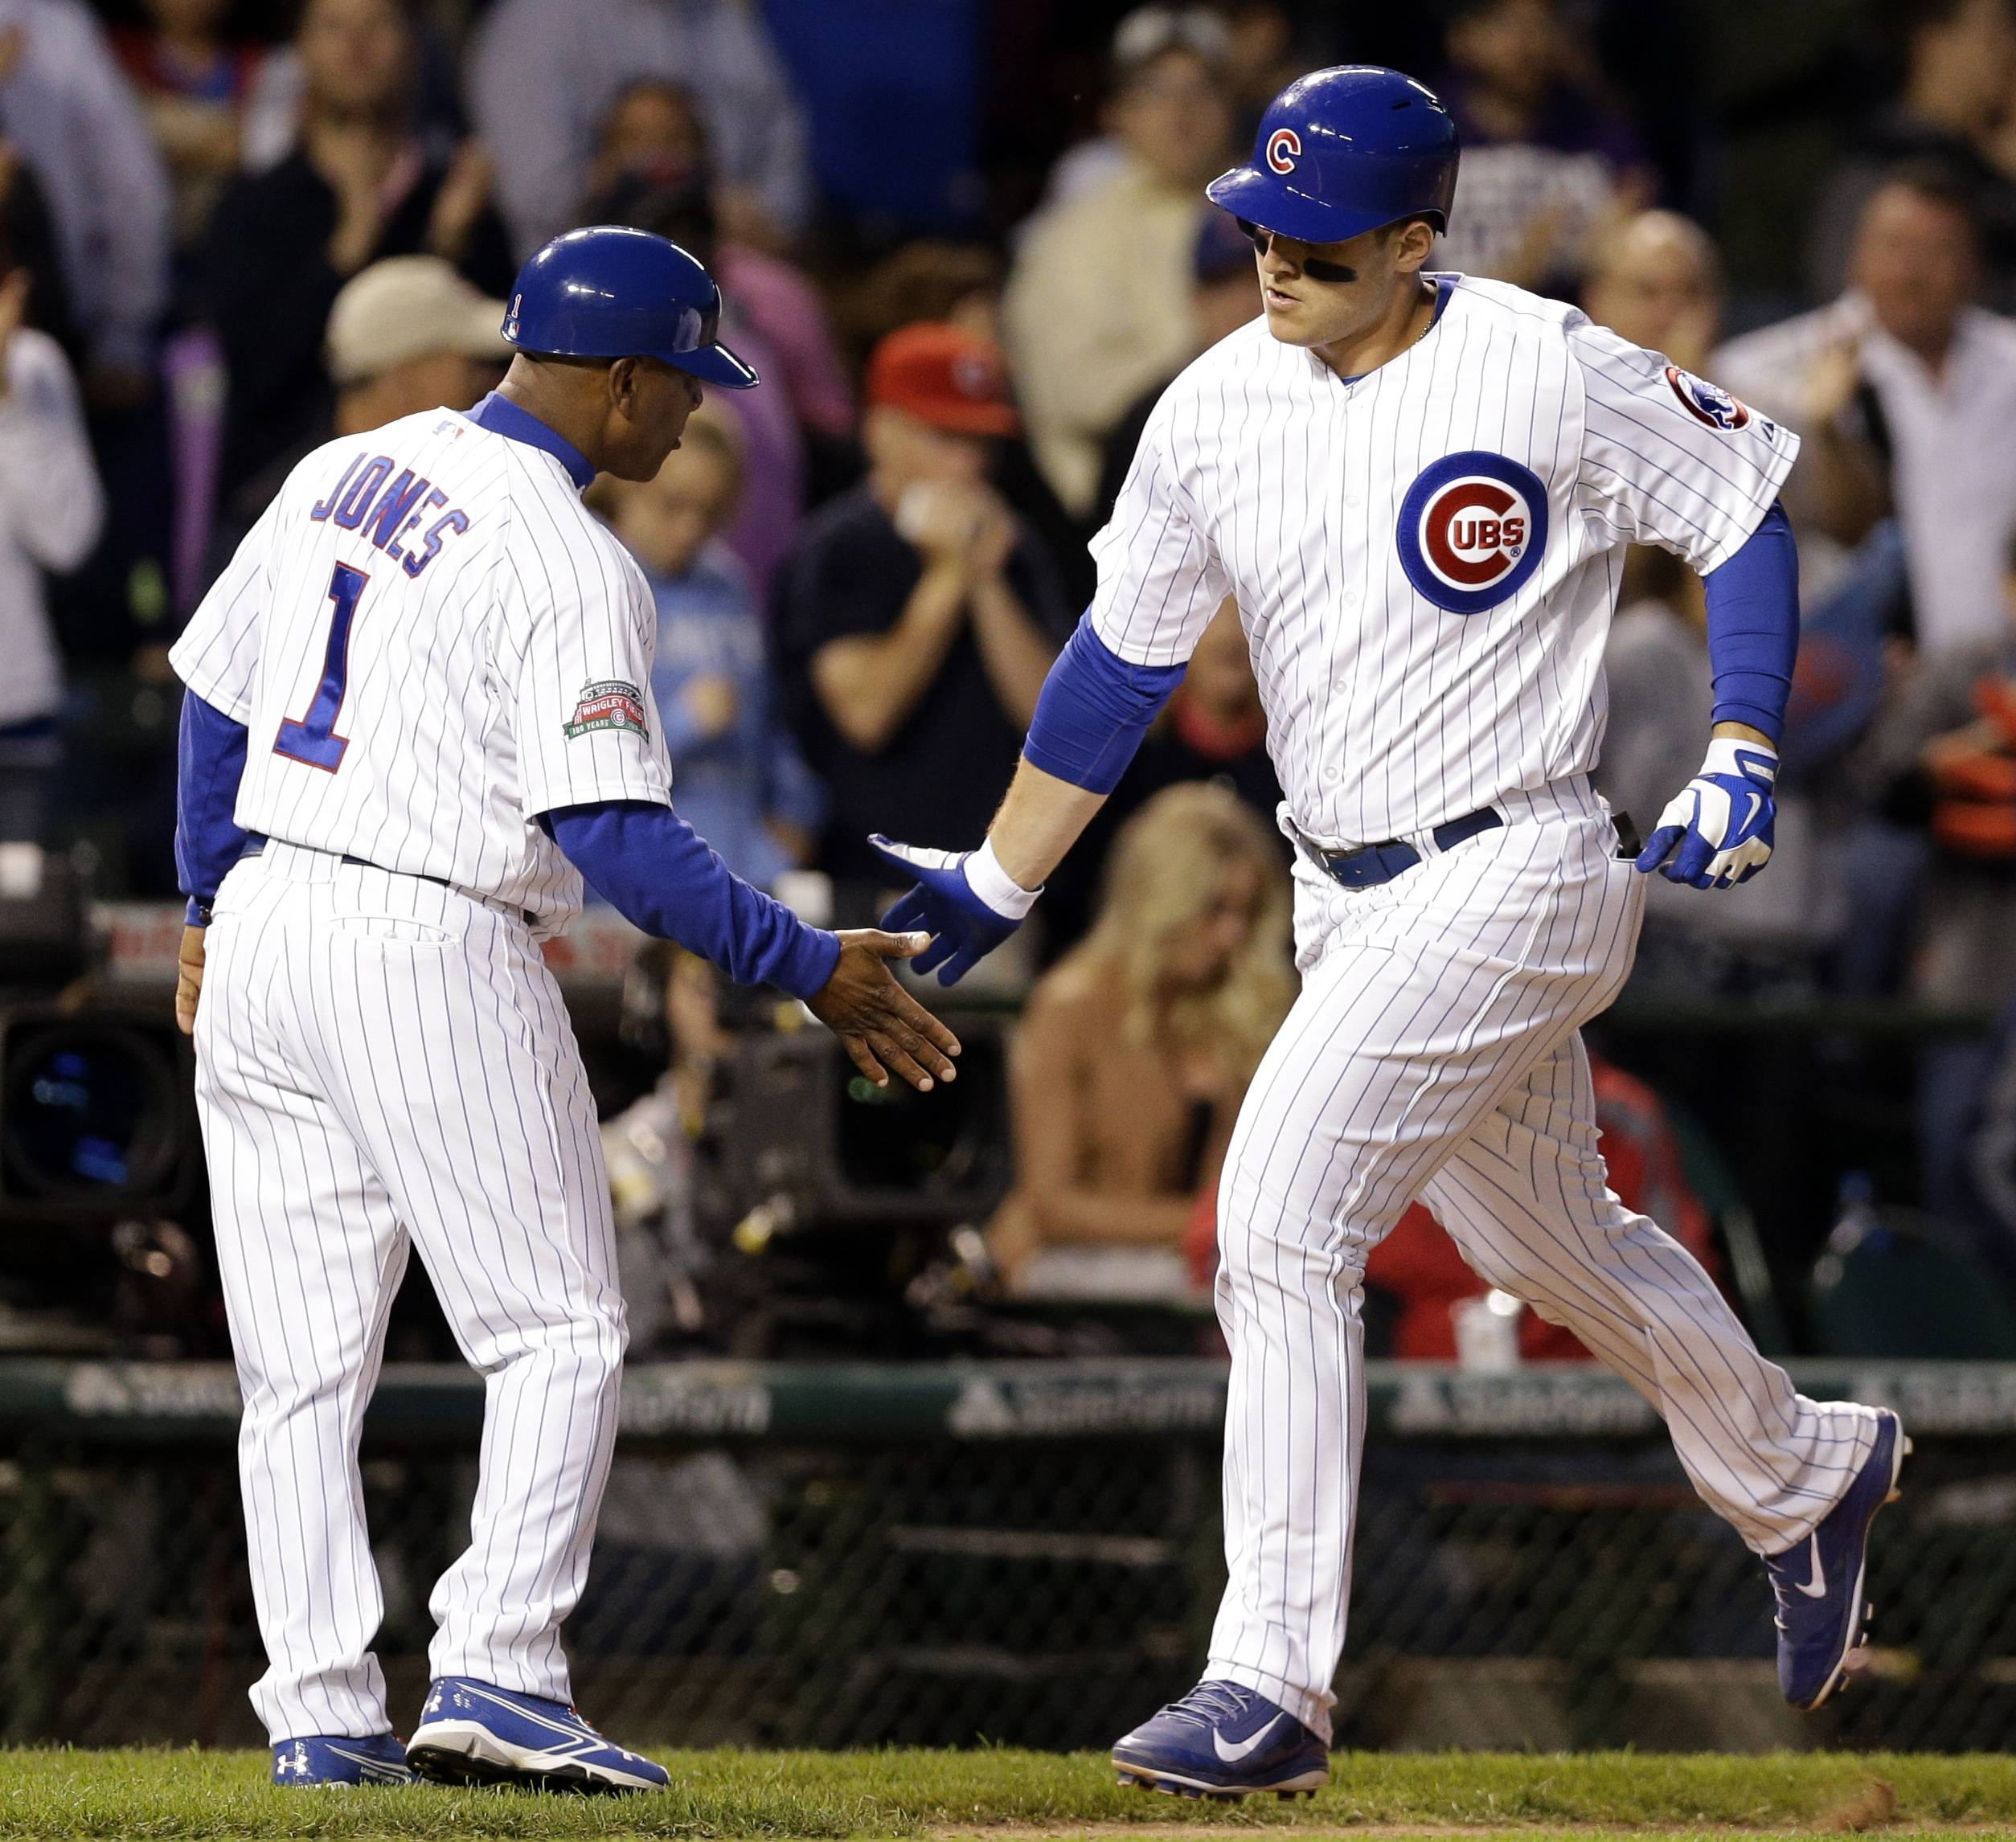 Chicago Cubs' Anthony Rizzo, right, celebrates with third base coach Gary Jones after hitting a solo home run during the seventh inning of a baseball game against the New York Mets in Chicago, Thursday, June 5, 2014. (AP Photo/Nam Y. Huh)